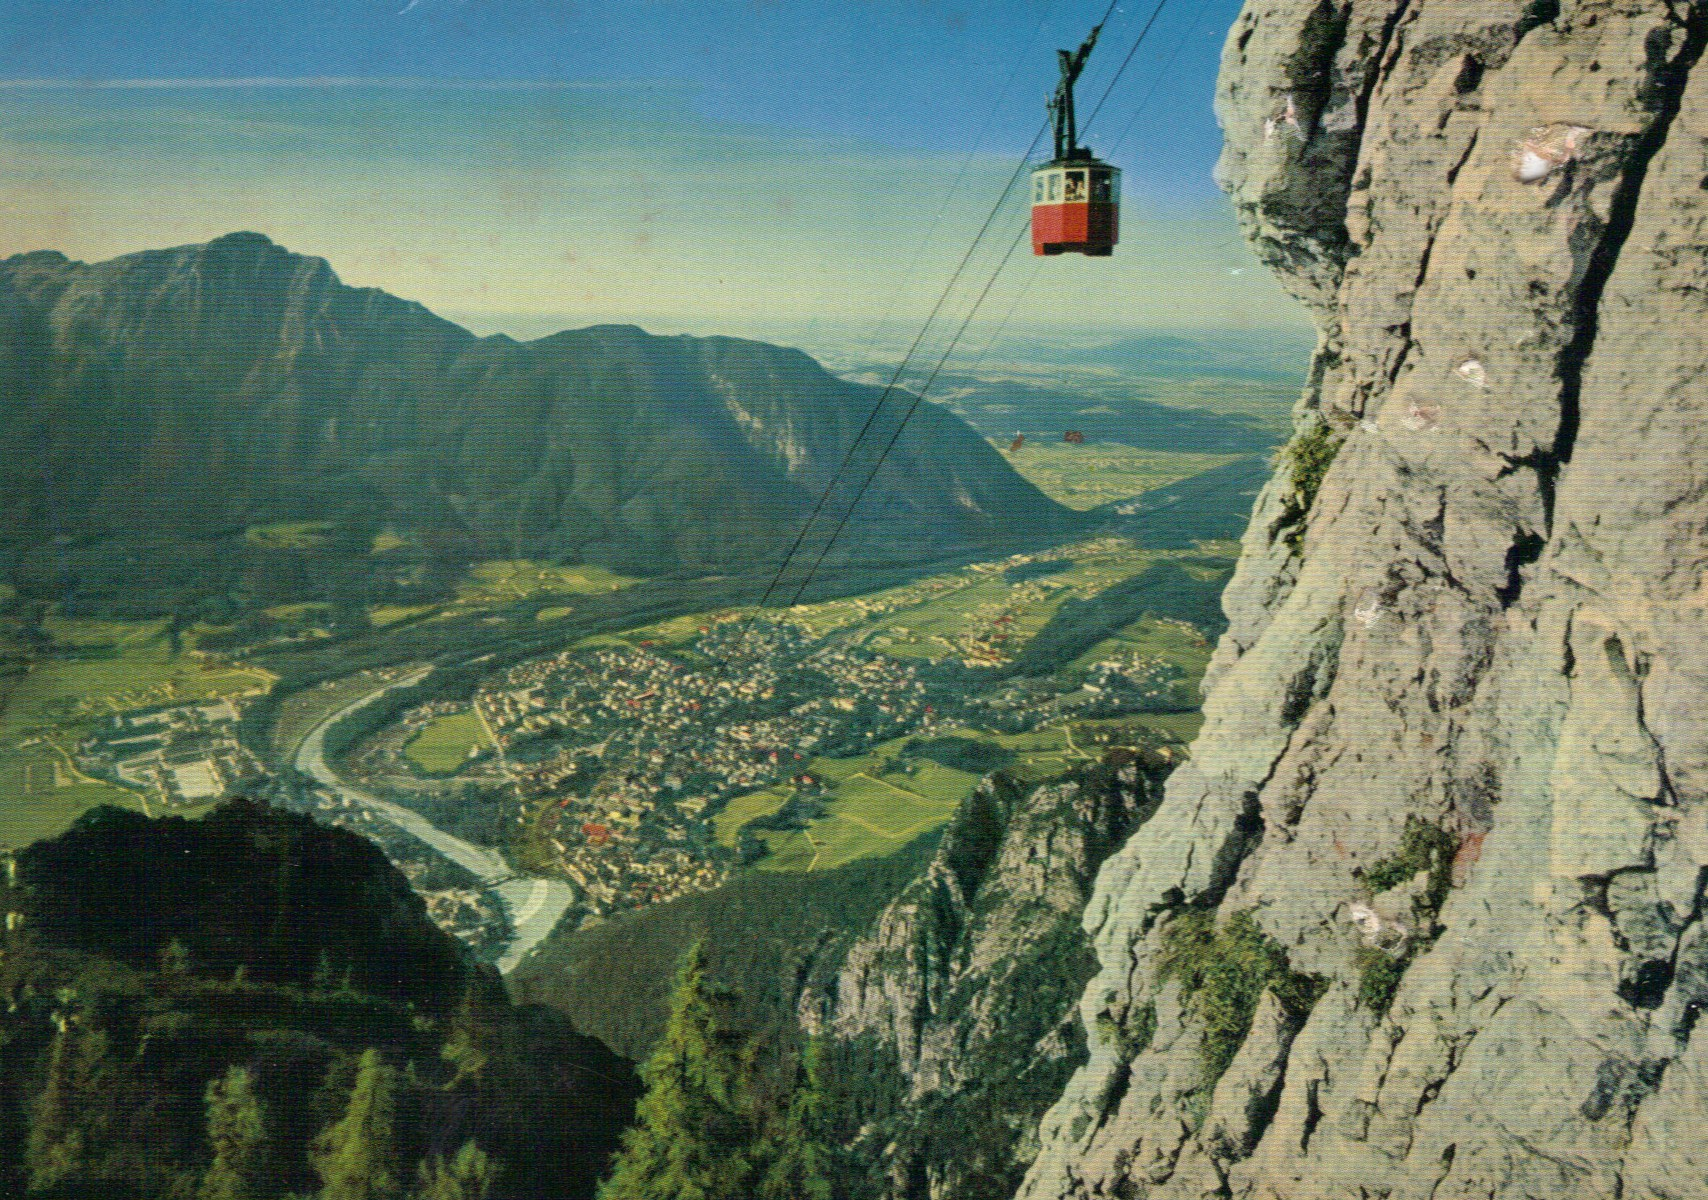 Cable Car near top